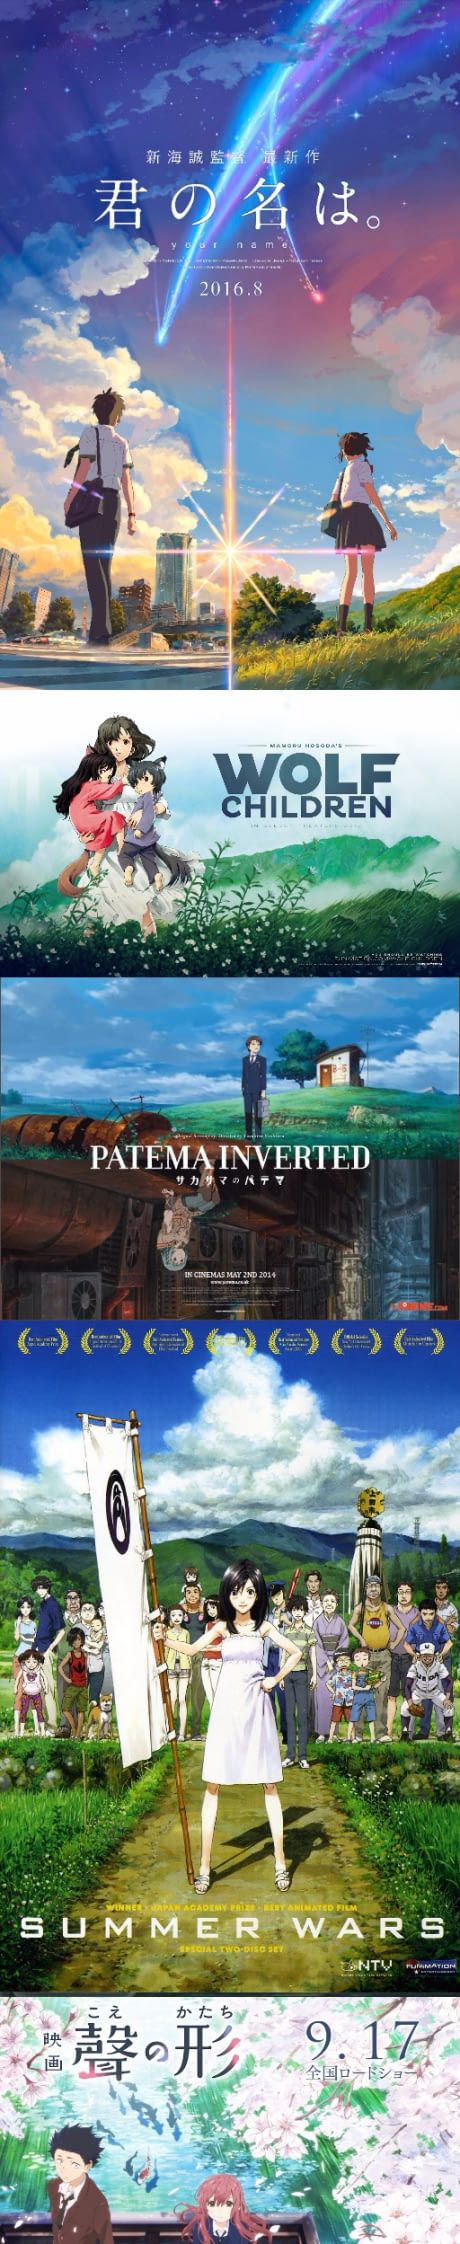 Top 5 heart warming anime movies recommendation that could change your life